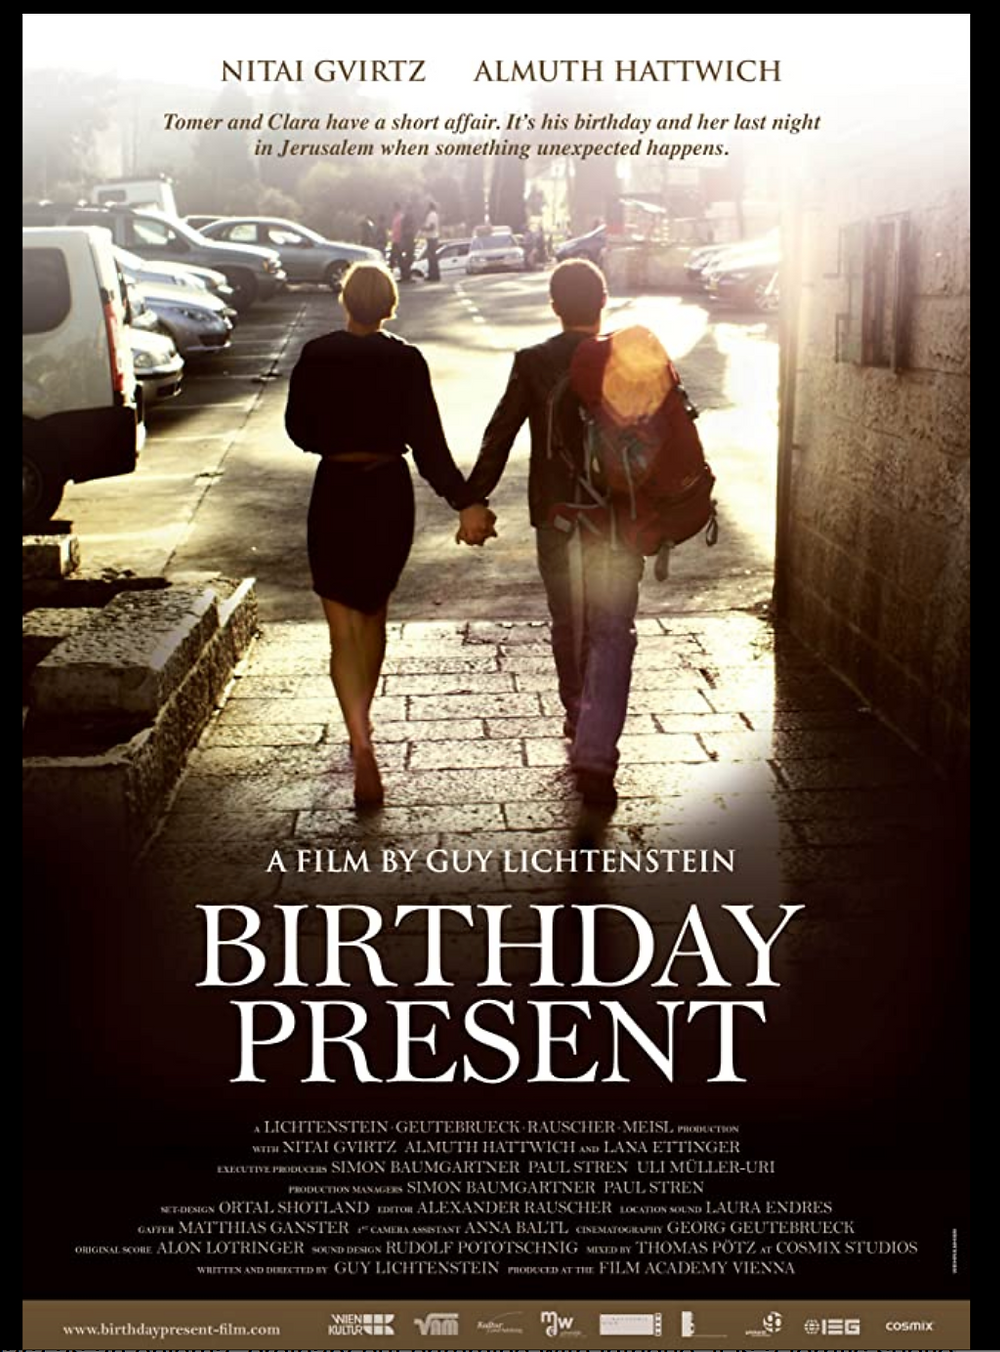 Poster for 'Birthday Present' showing the two characters walking on a sunlit street holding hands.